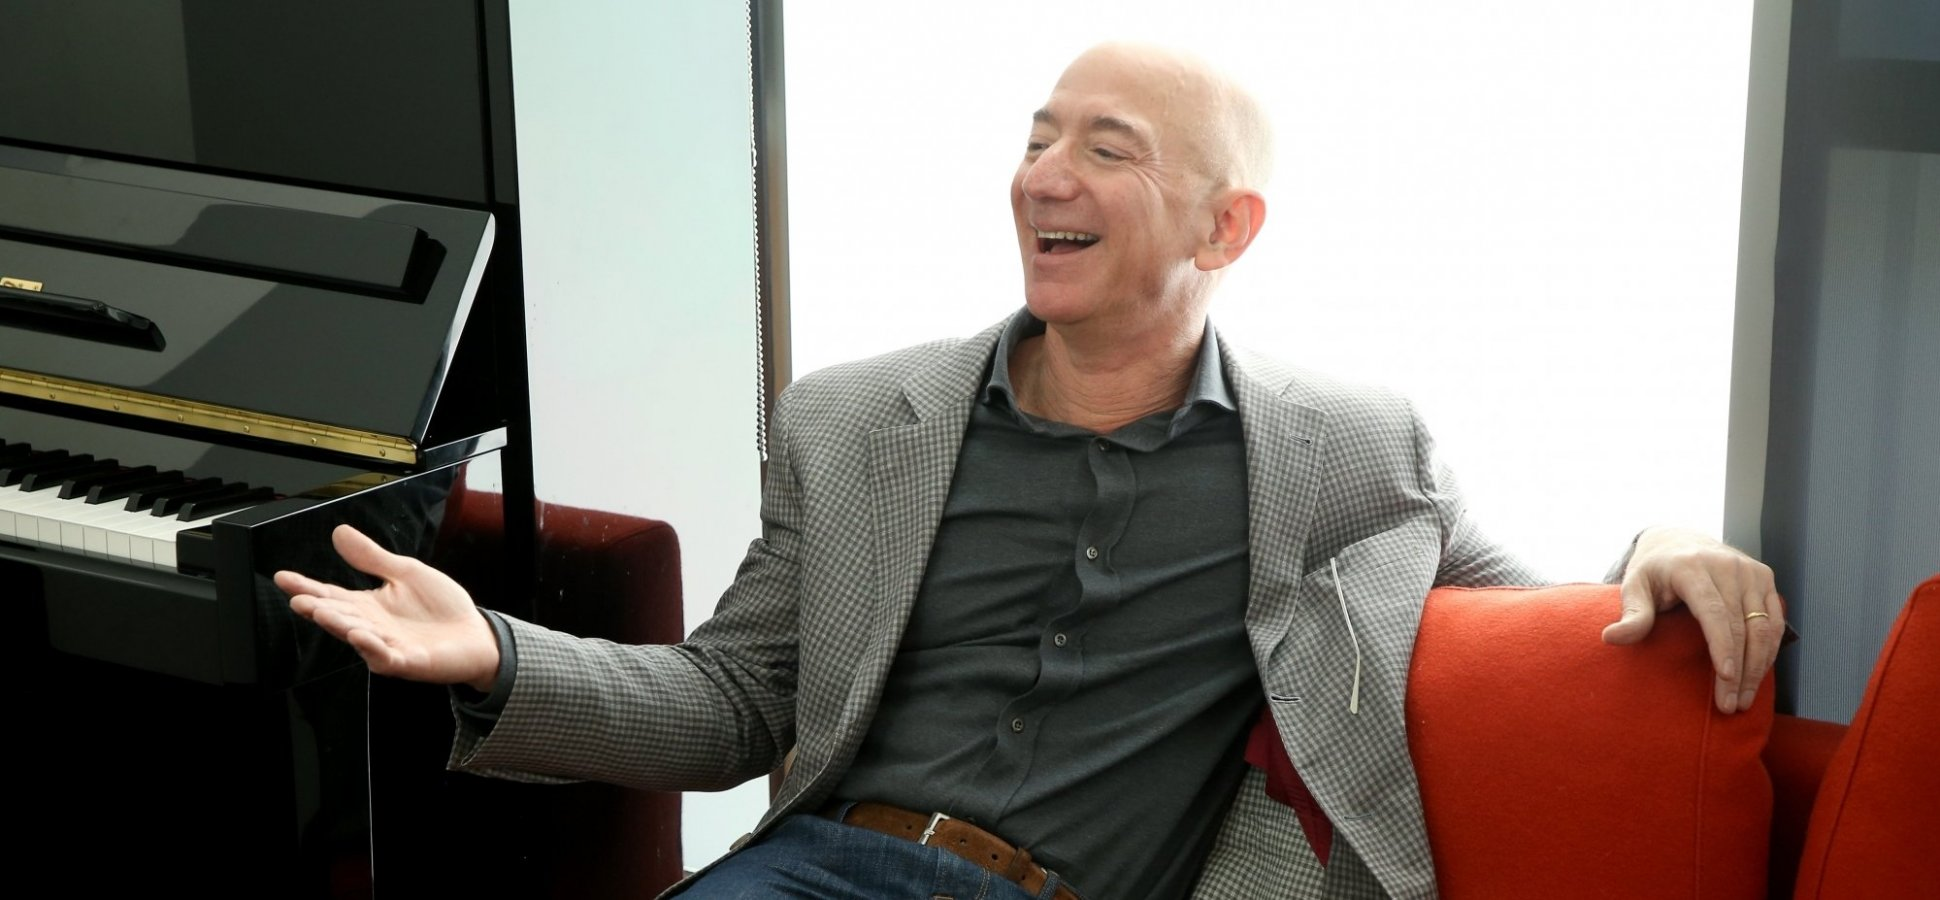 Jeff Bezos Says This 1 Sentence (Hidden in Plain Sight for 20 Years) Is the Key to Amazon's Success